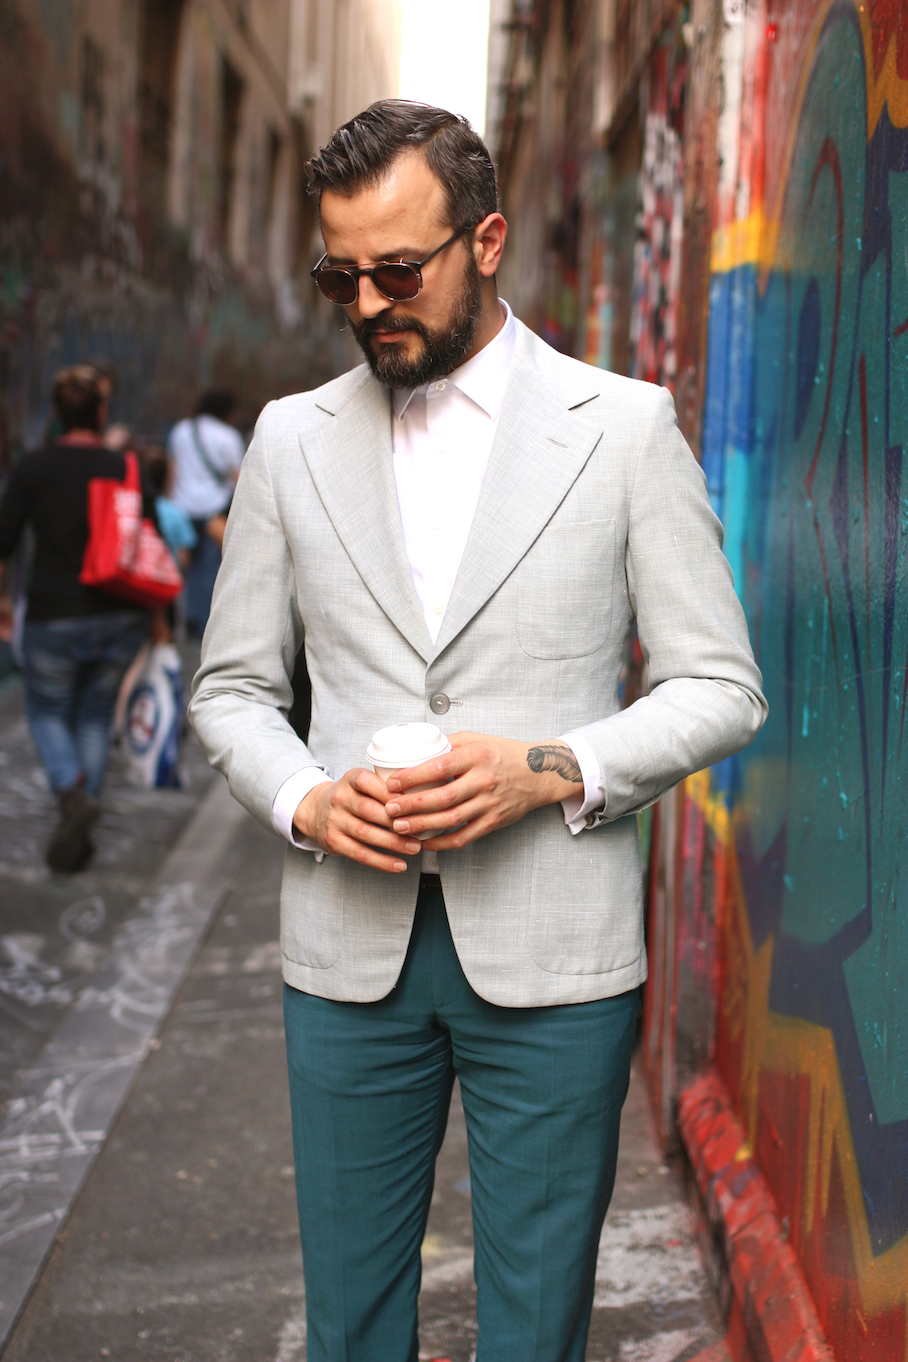 """Vic, Jon Cordiano, Retail/Fashion Design, Melbourne. """"My styles is dapper with a dash of street."""" Photo: <a href=""""http://www.marythamphotography.weebly.com/"""" target=""""_blank"""">Mary Tham </a>"""